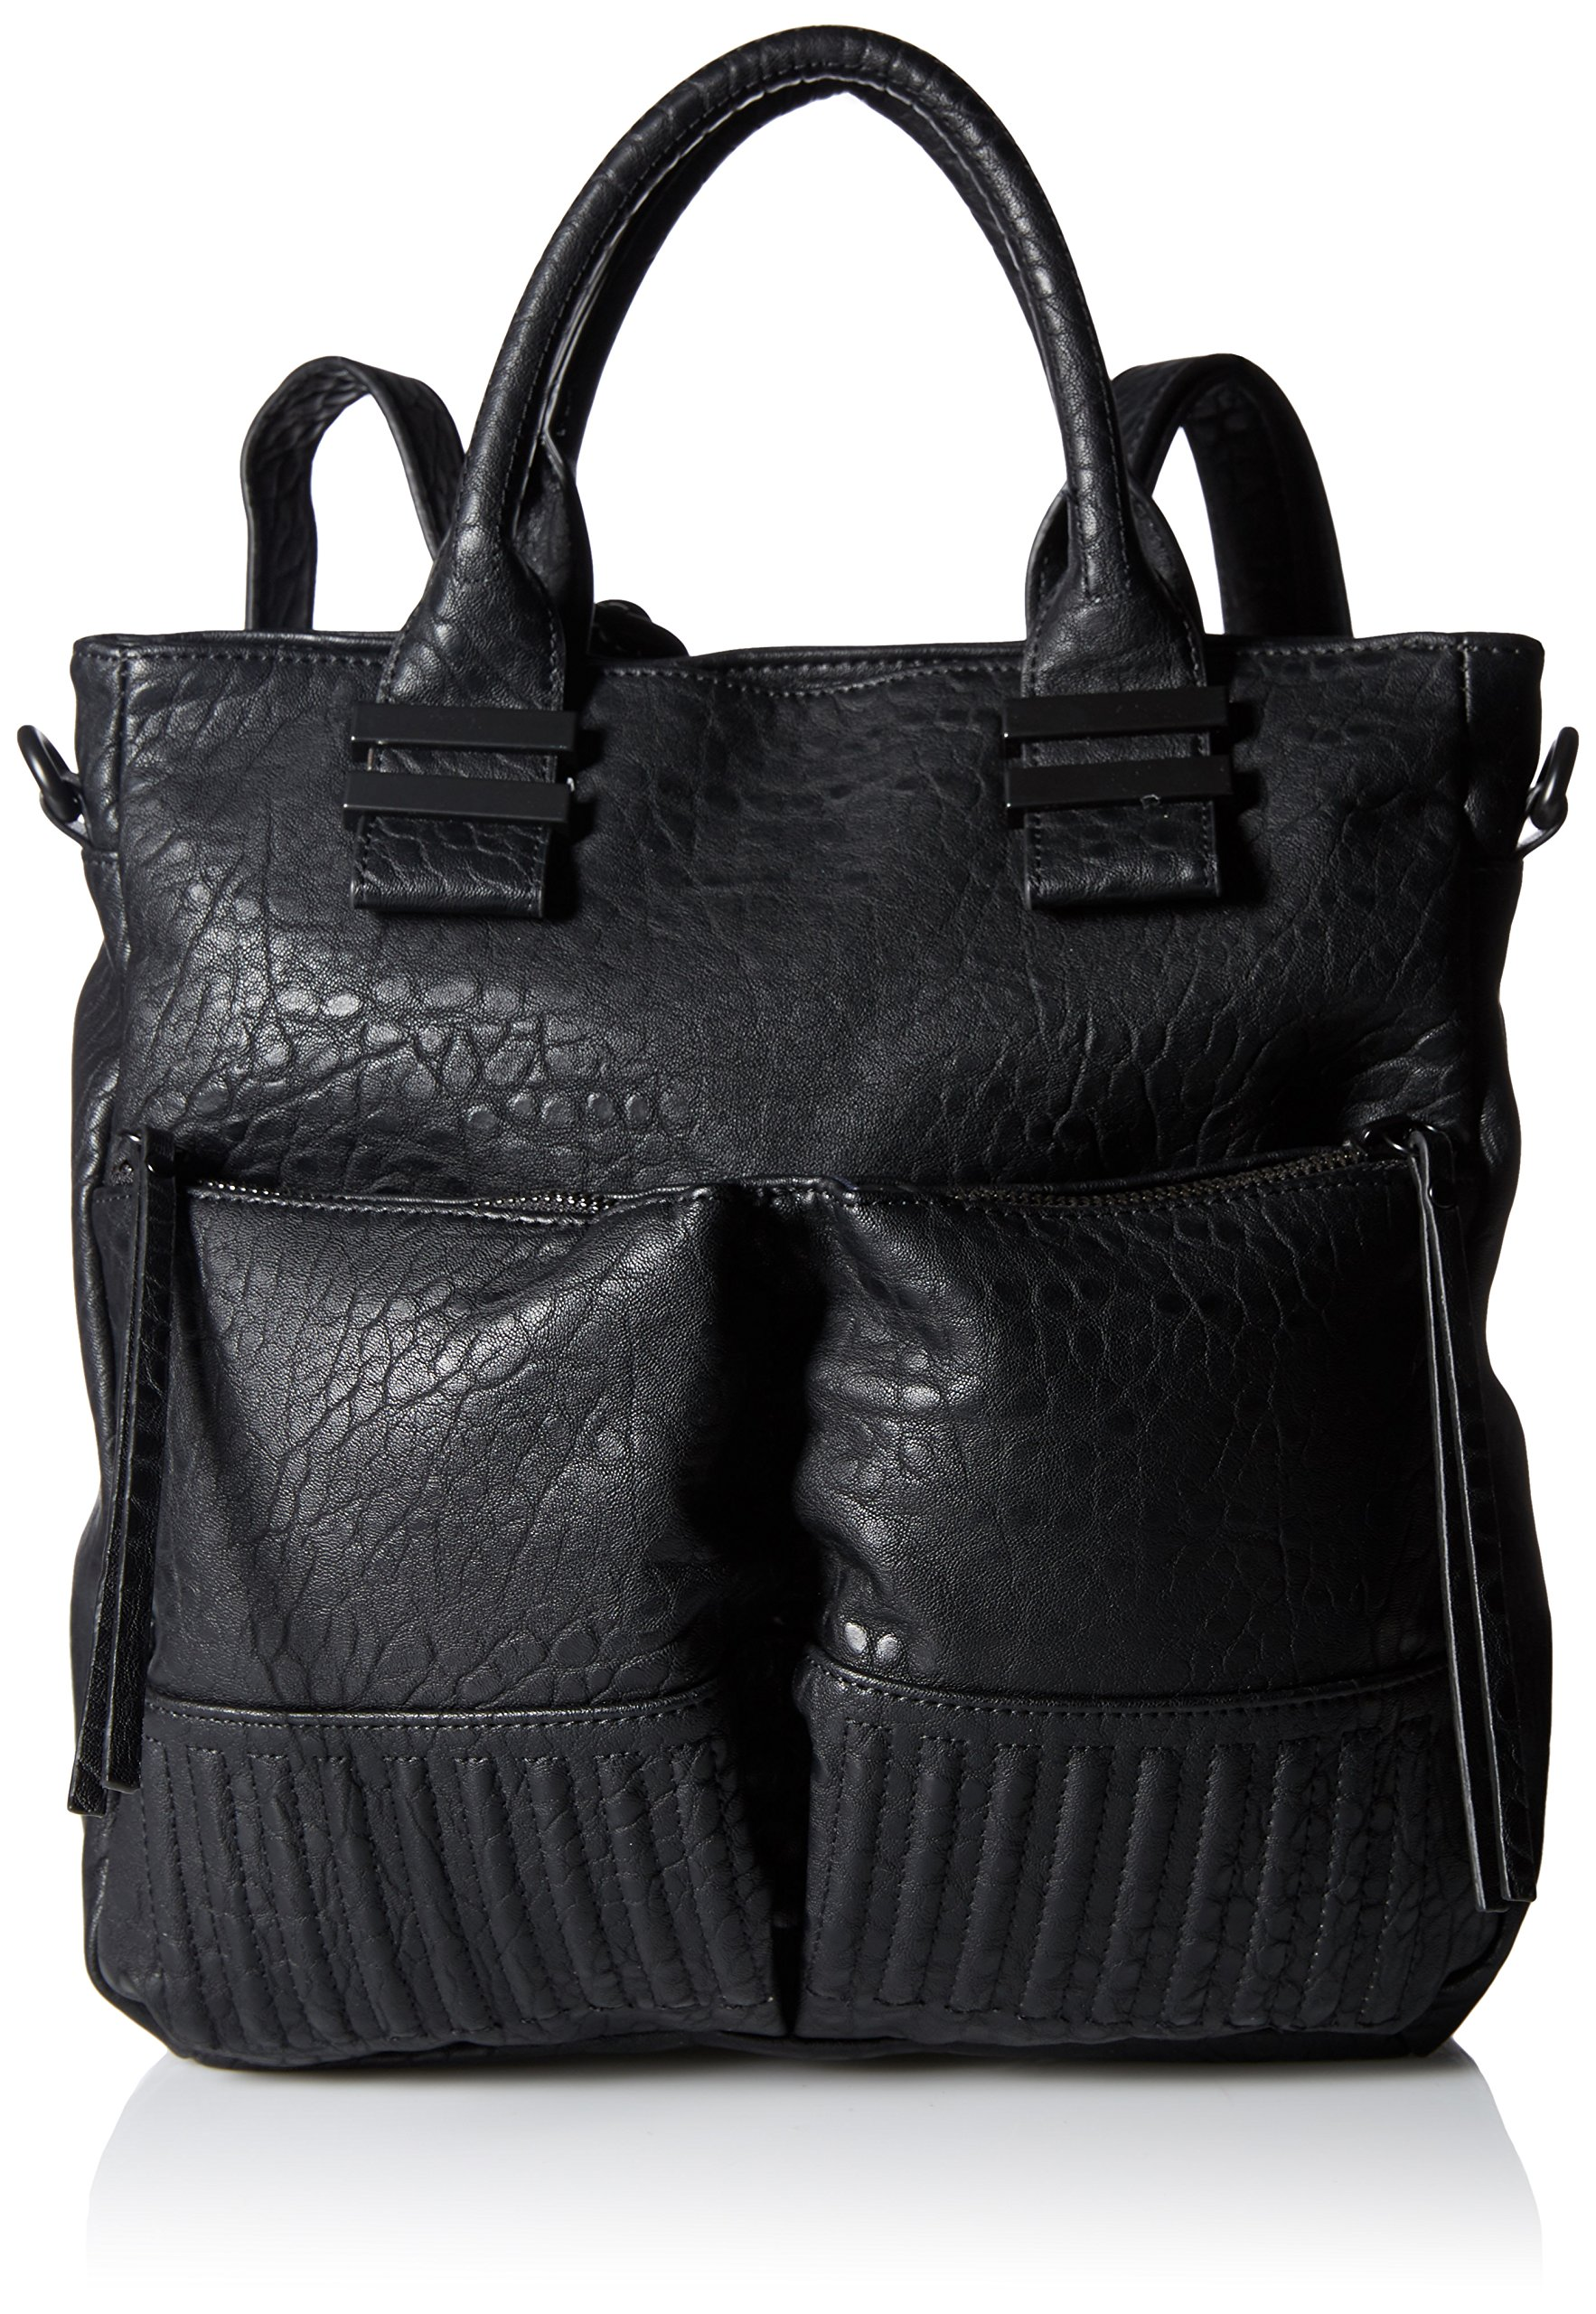 French Connection Kim Back pack, Black, One Size